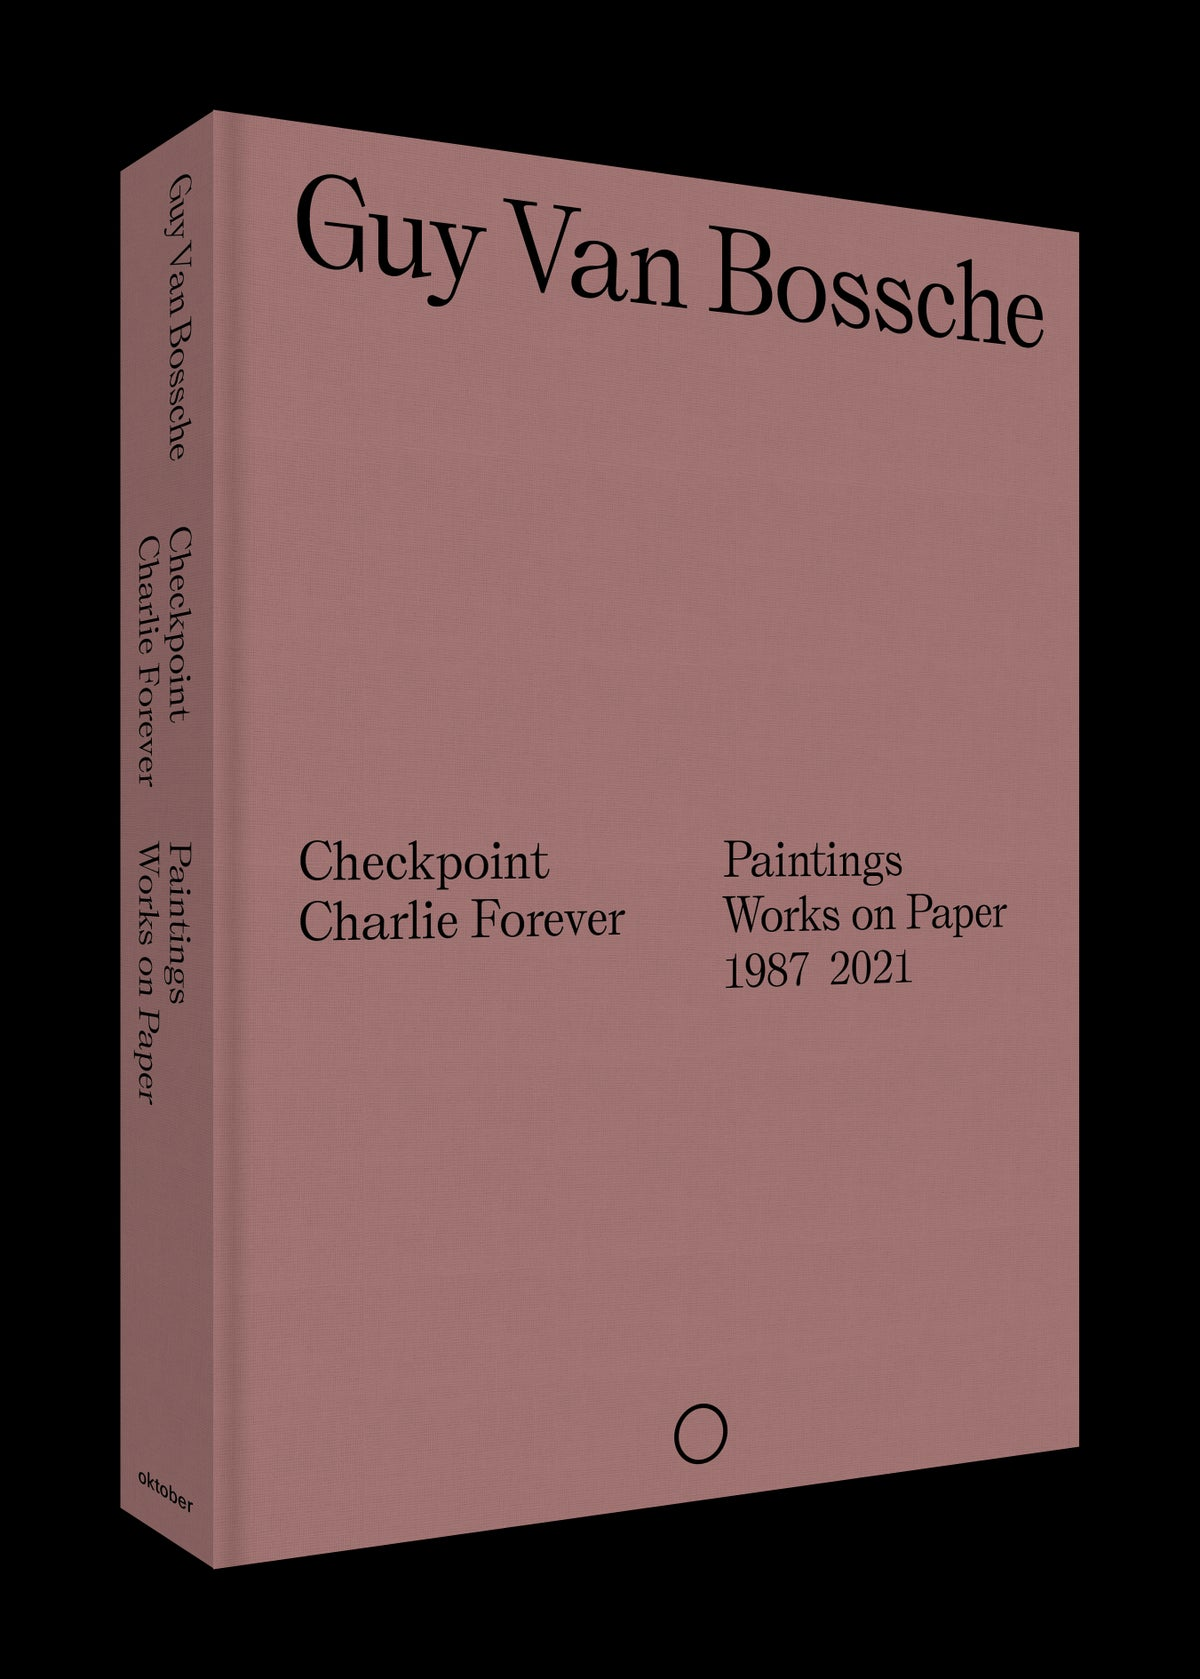 Image of Guy Van Bossche - Checkpoint Charlie Forever - Paintings and works on paper 1987 - 2021